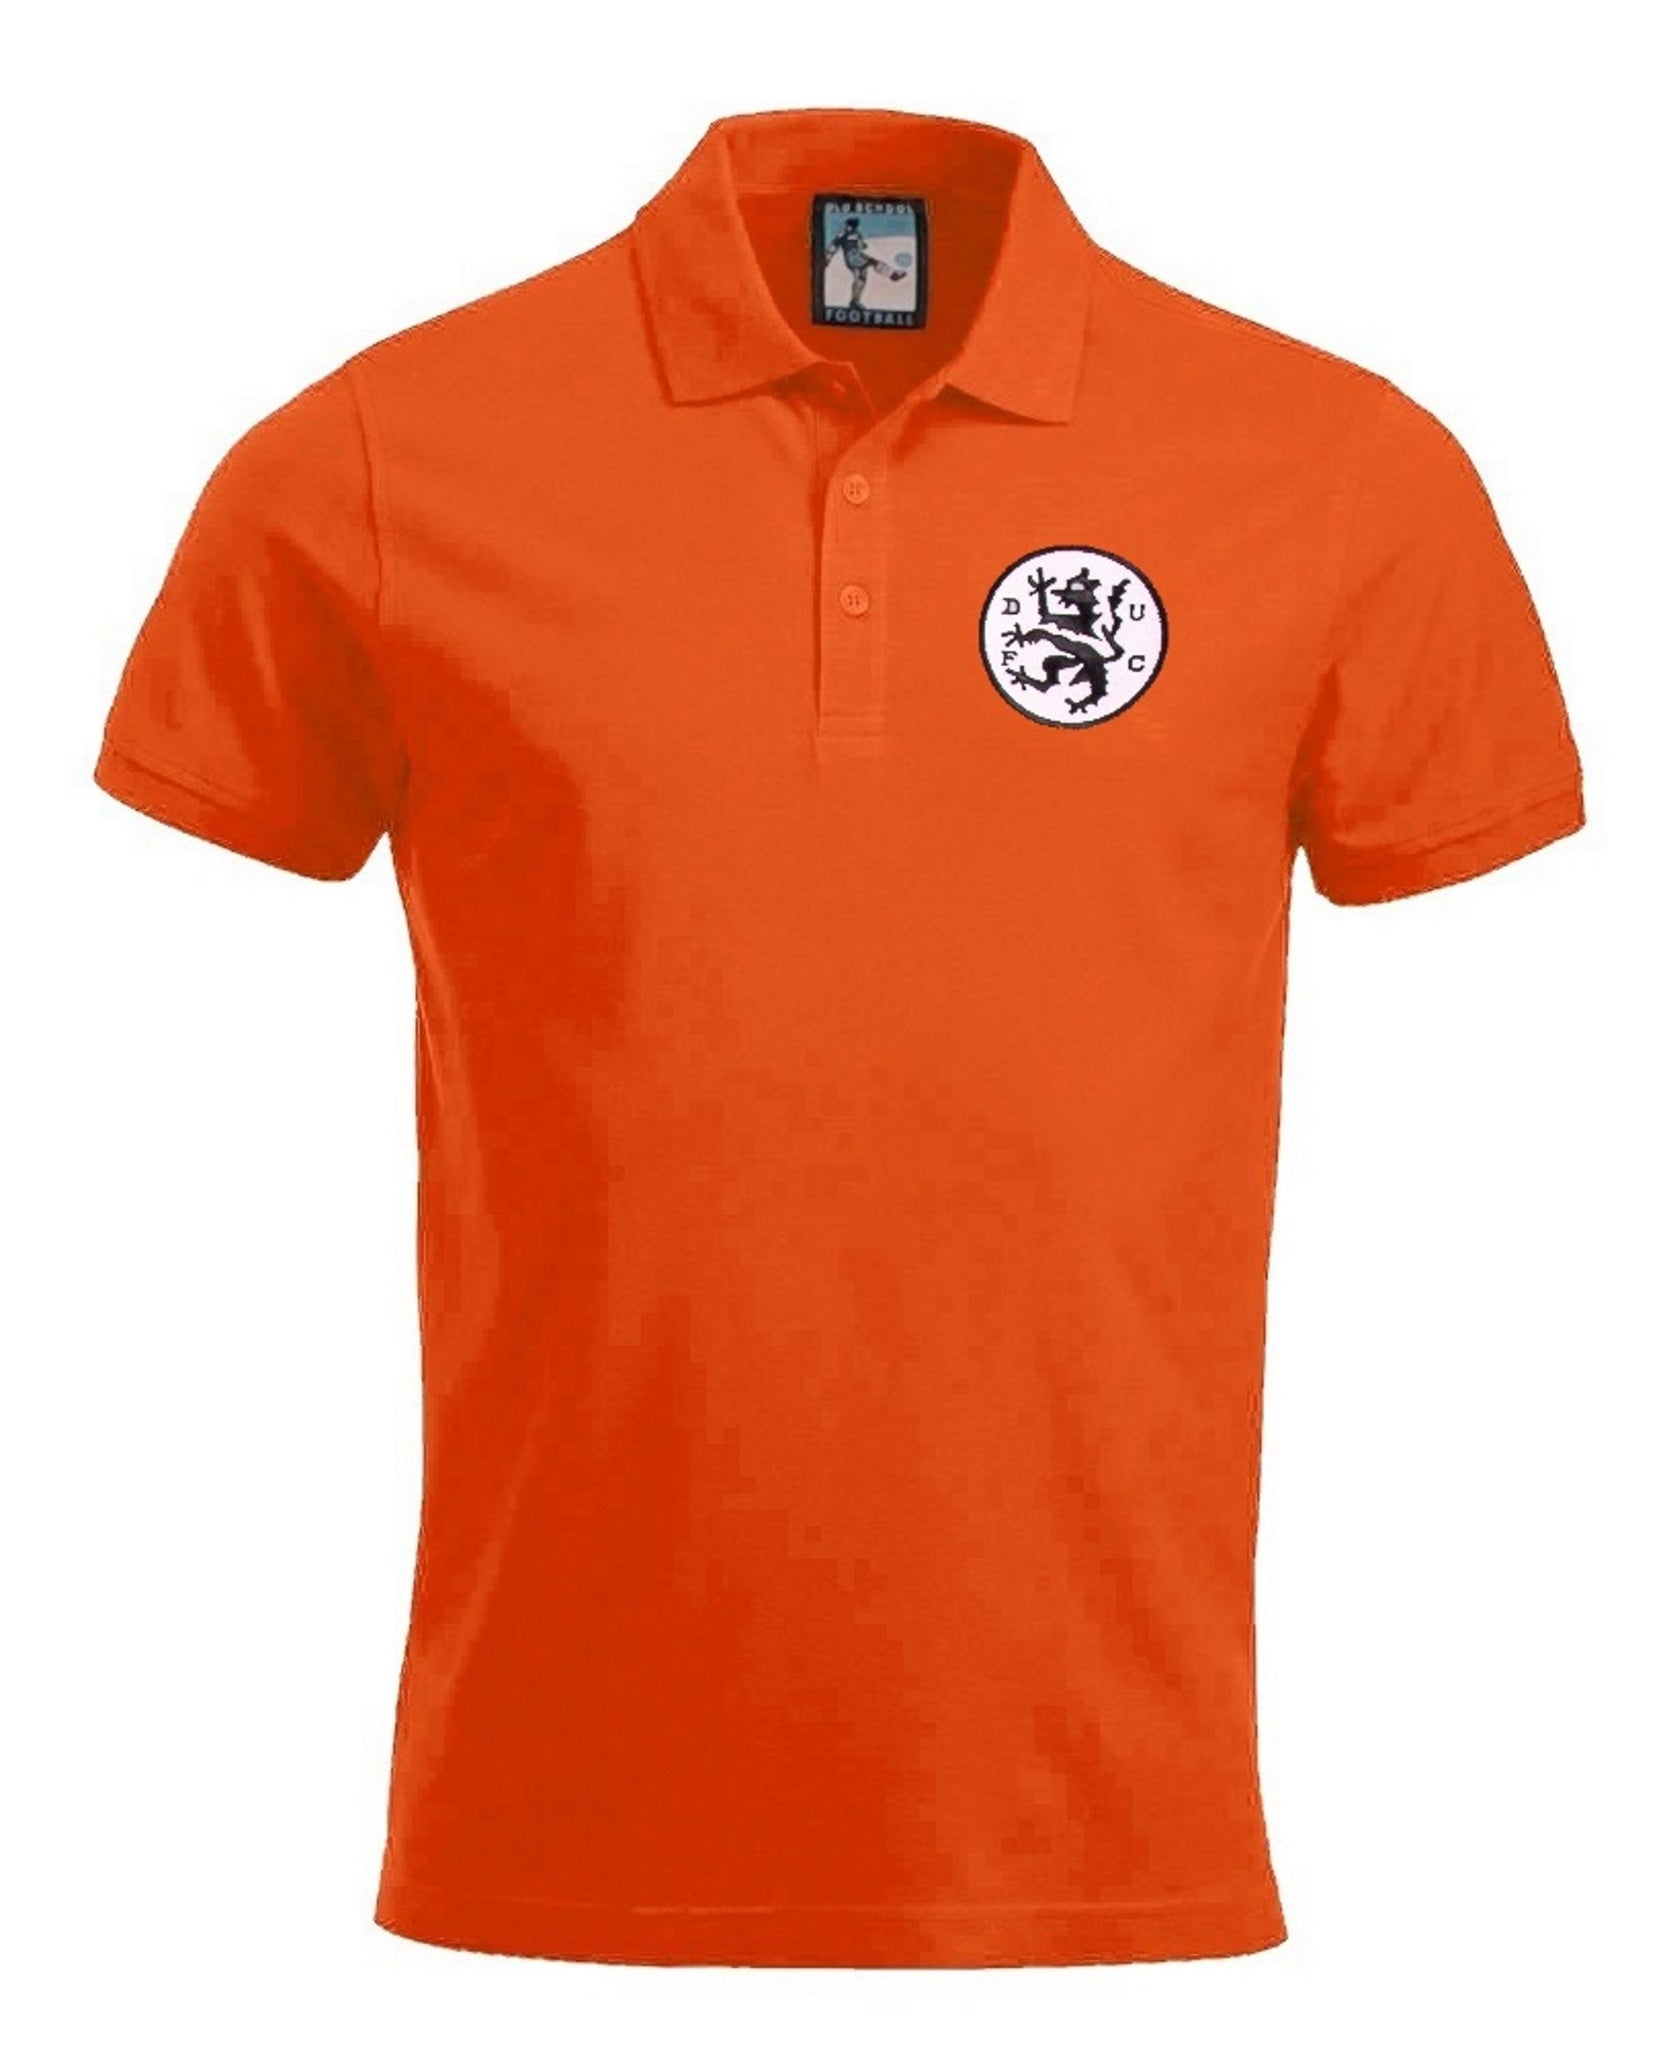 Dundee United 1969 Polo - Old School Football